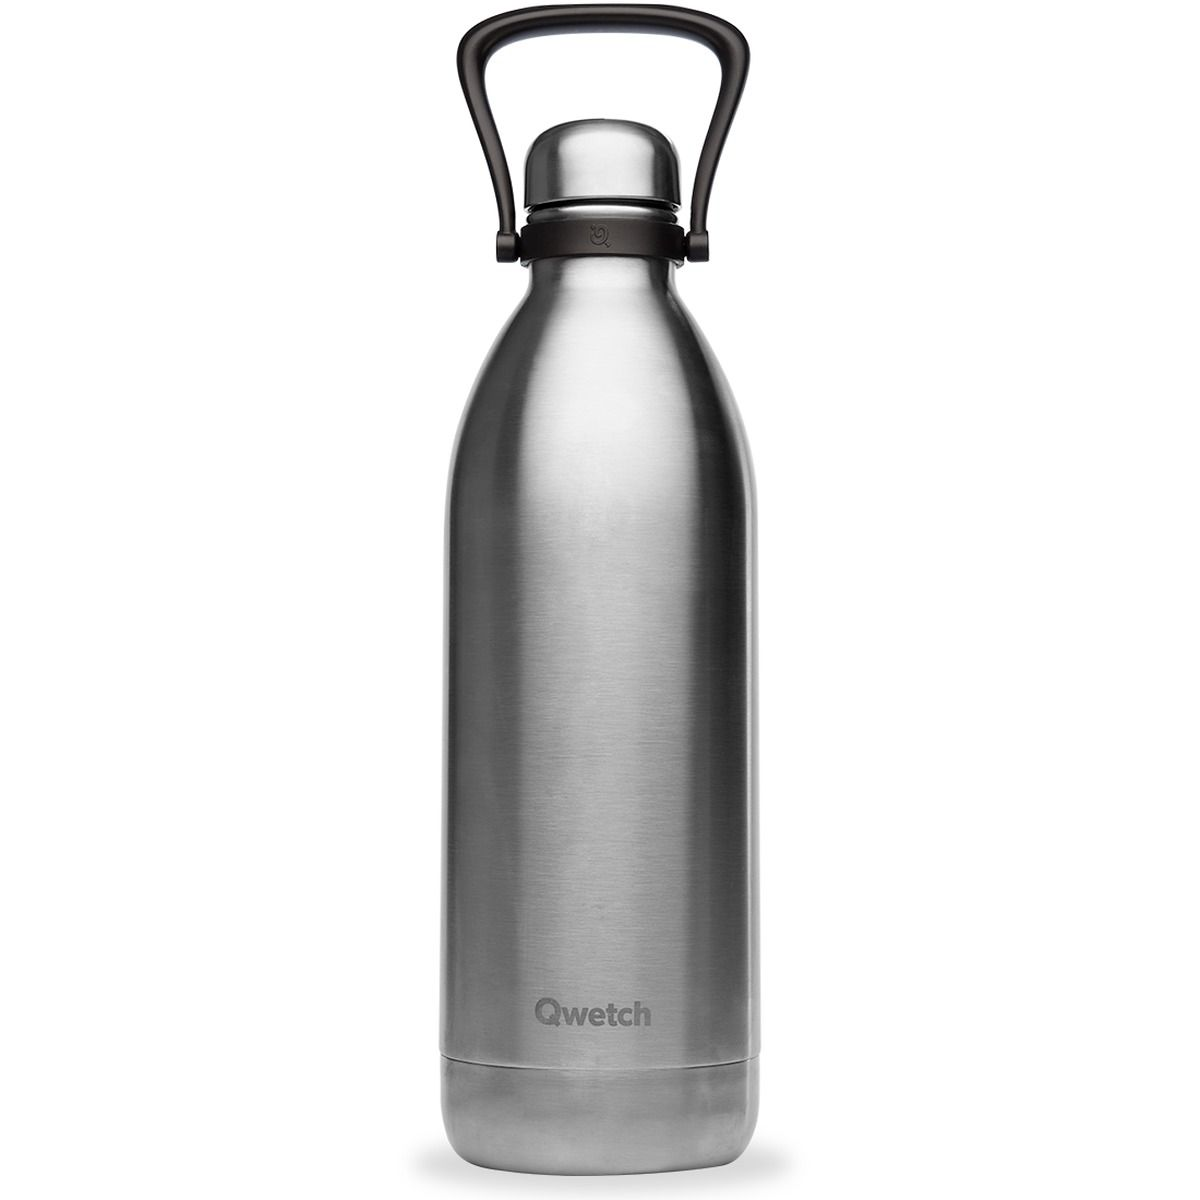 Bouteille isotherme inox brossé - 2000ml - Qwetch